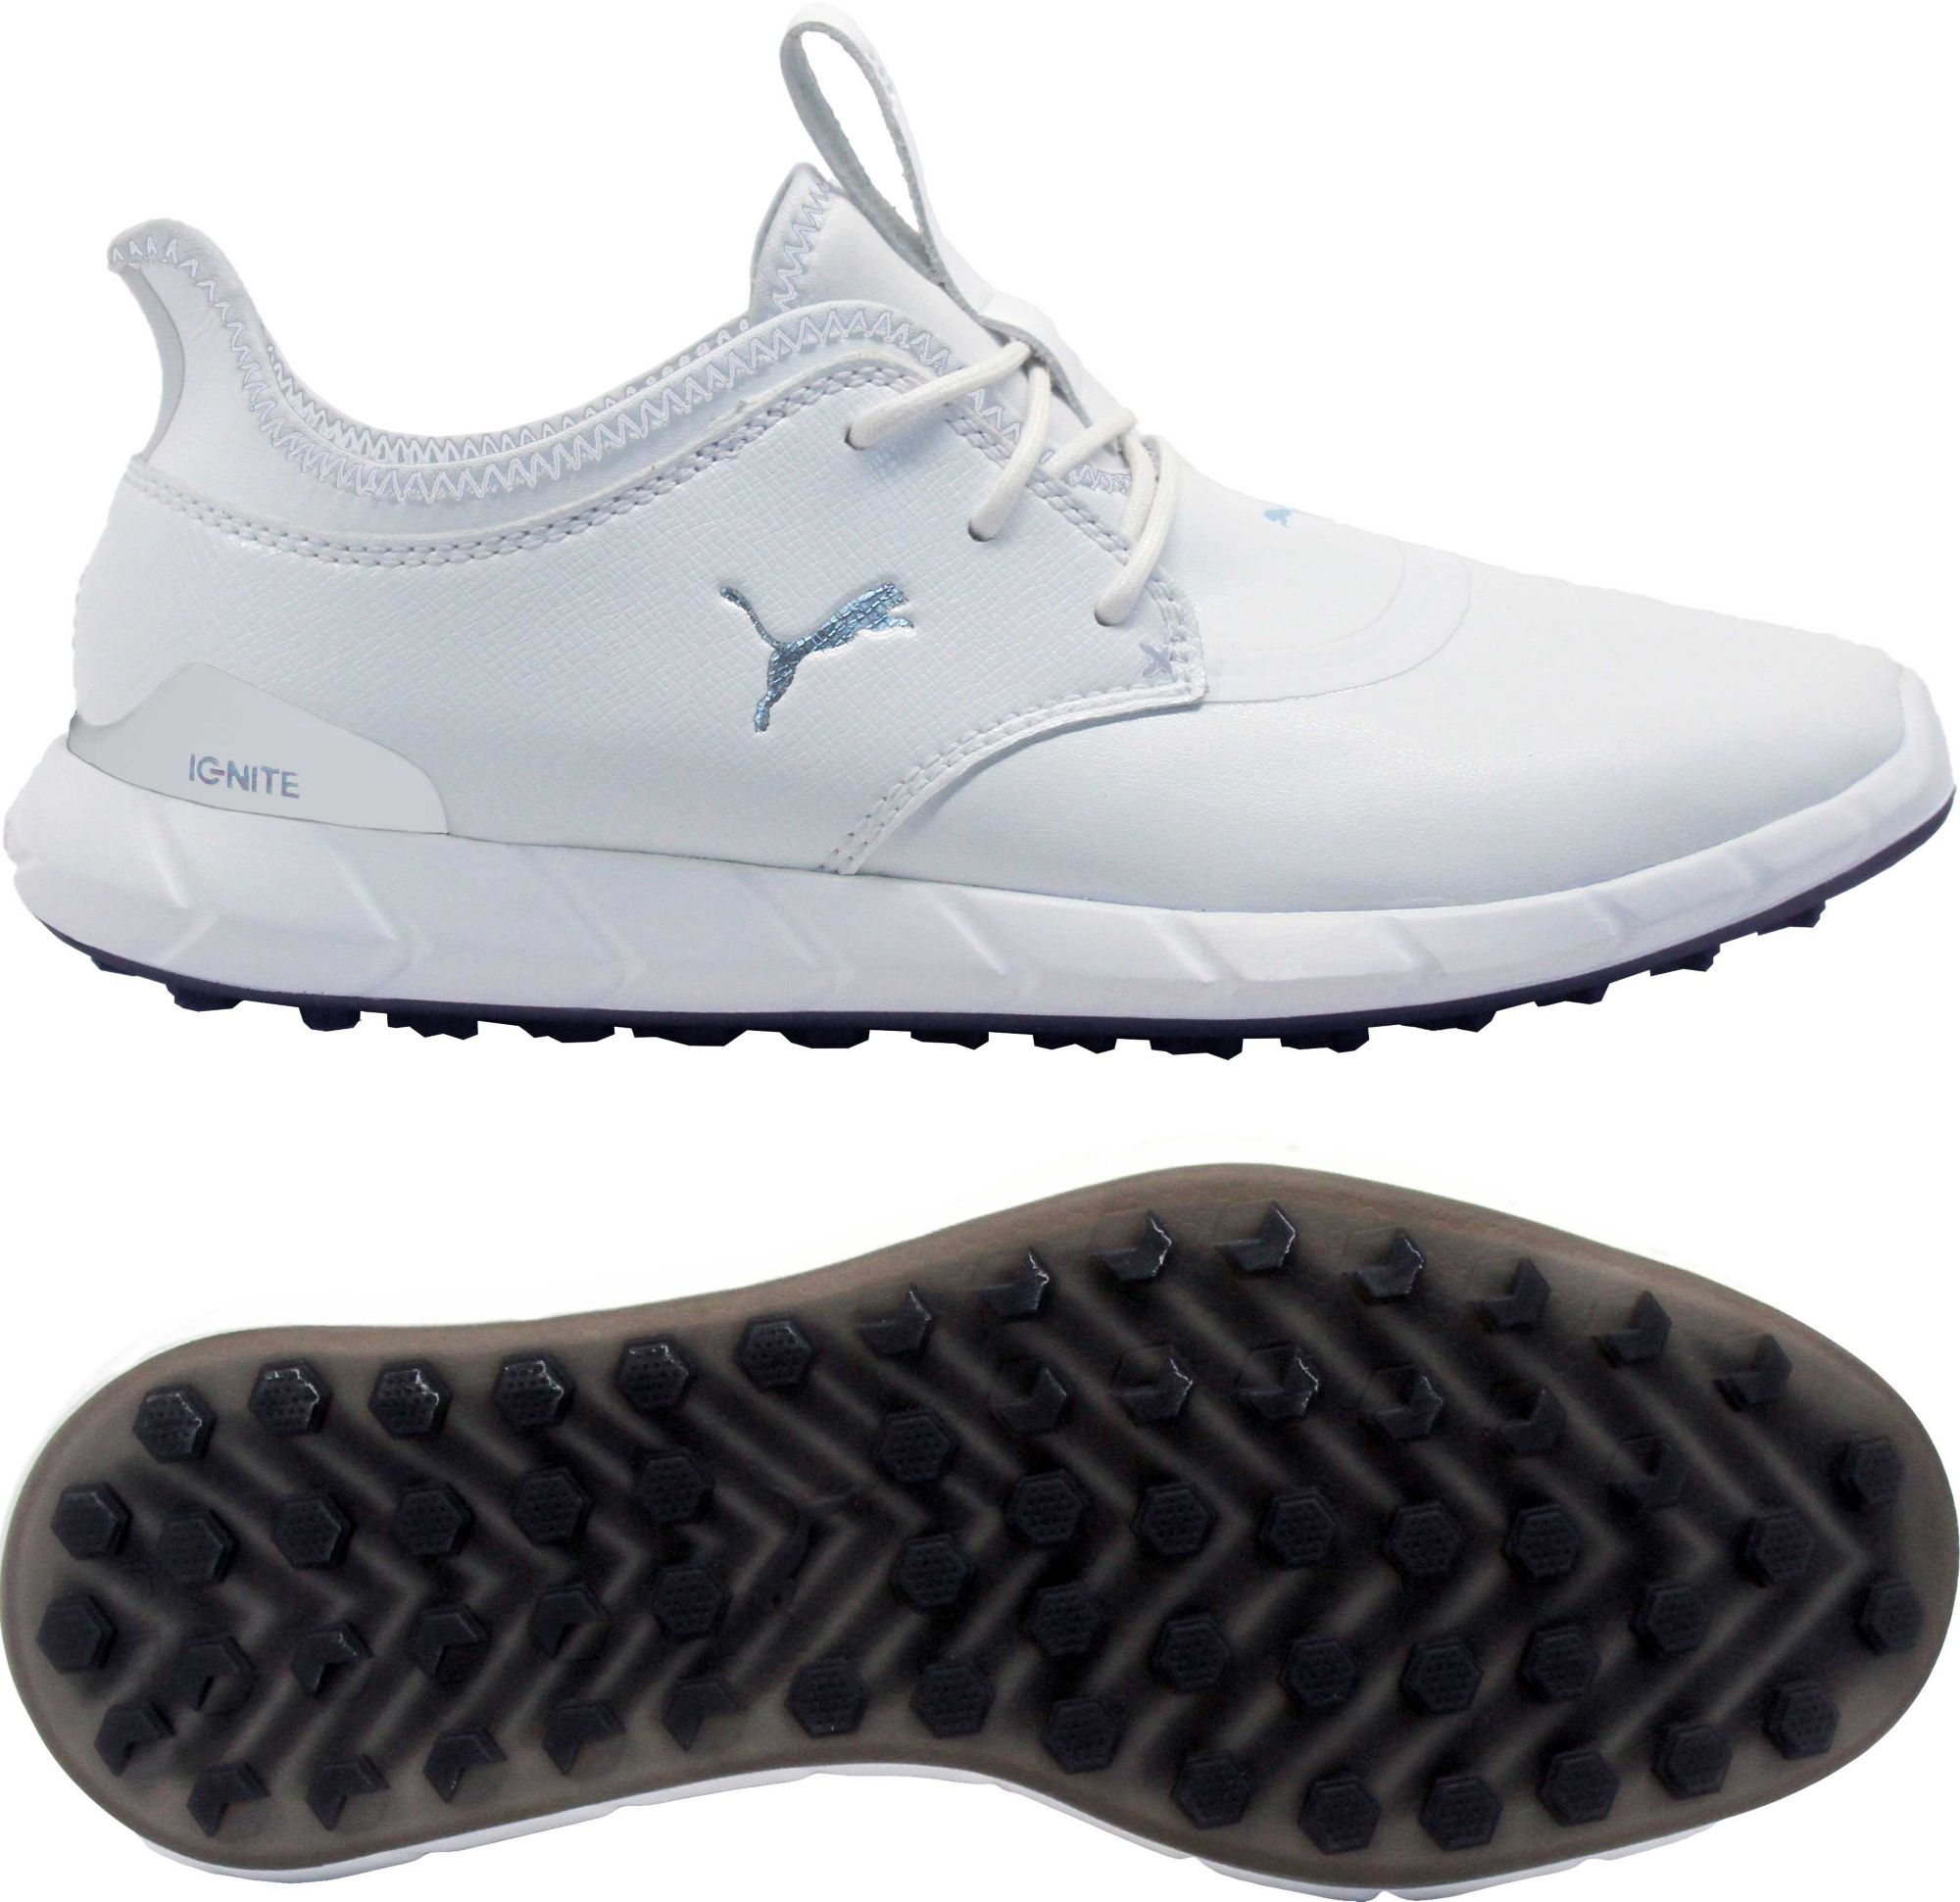 Ignite Spikeless Pro Golf Shoes